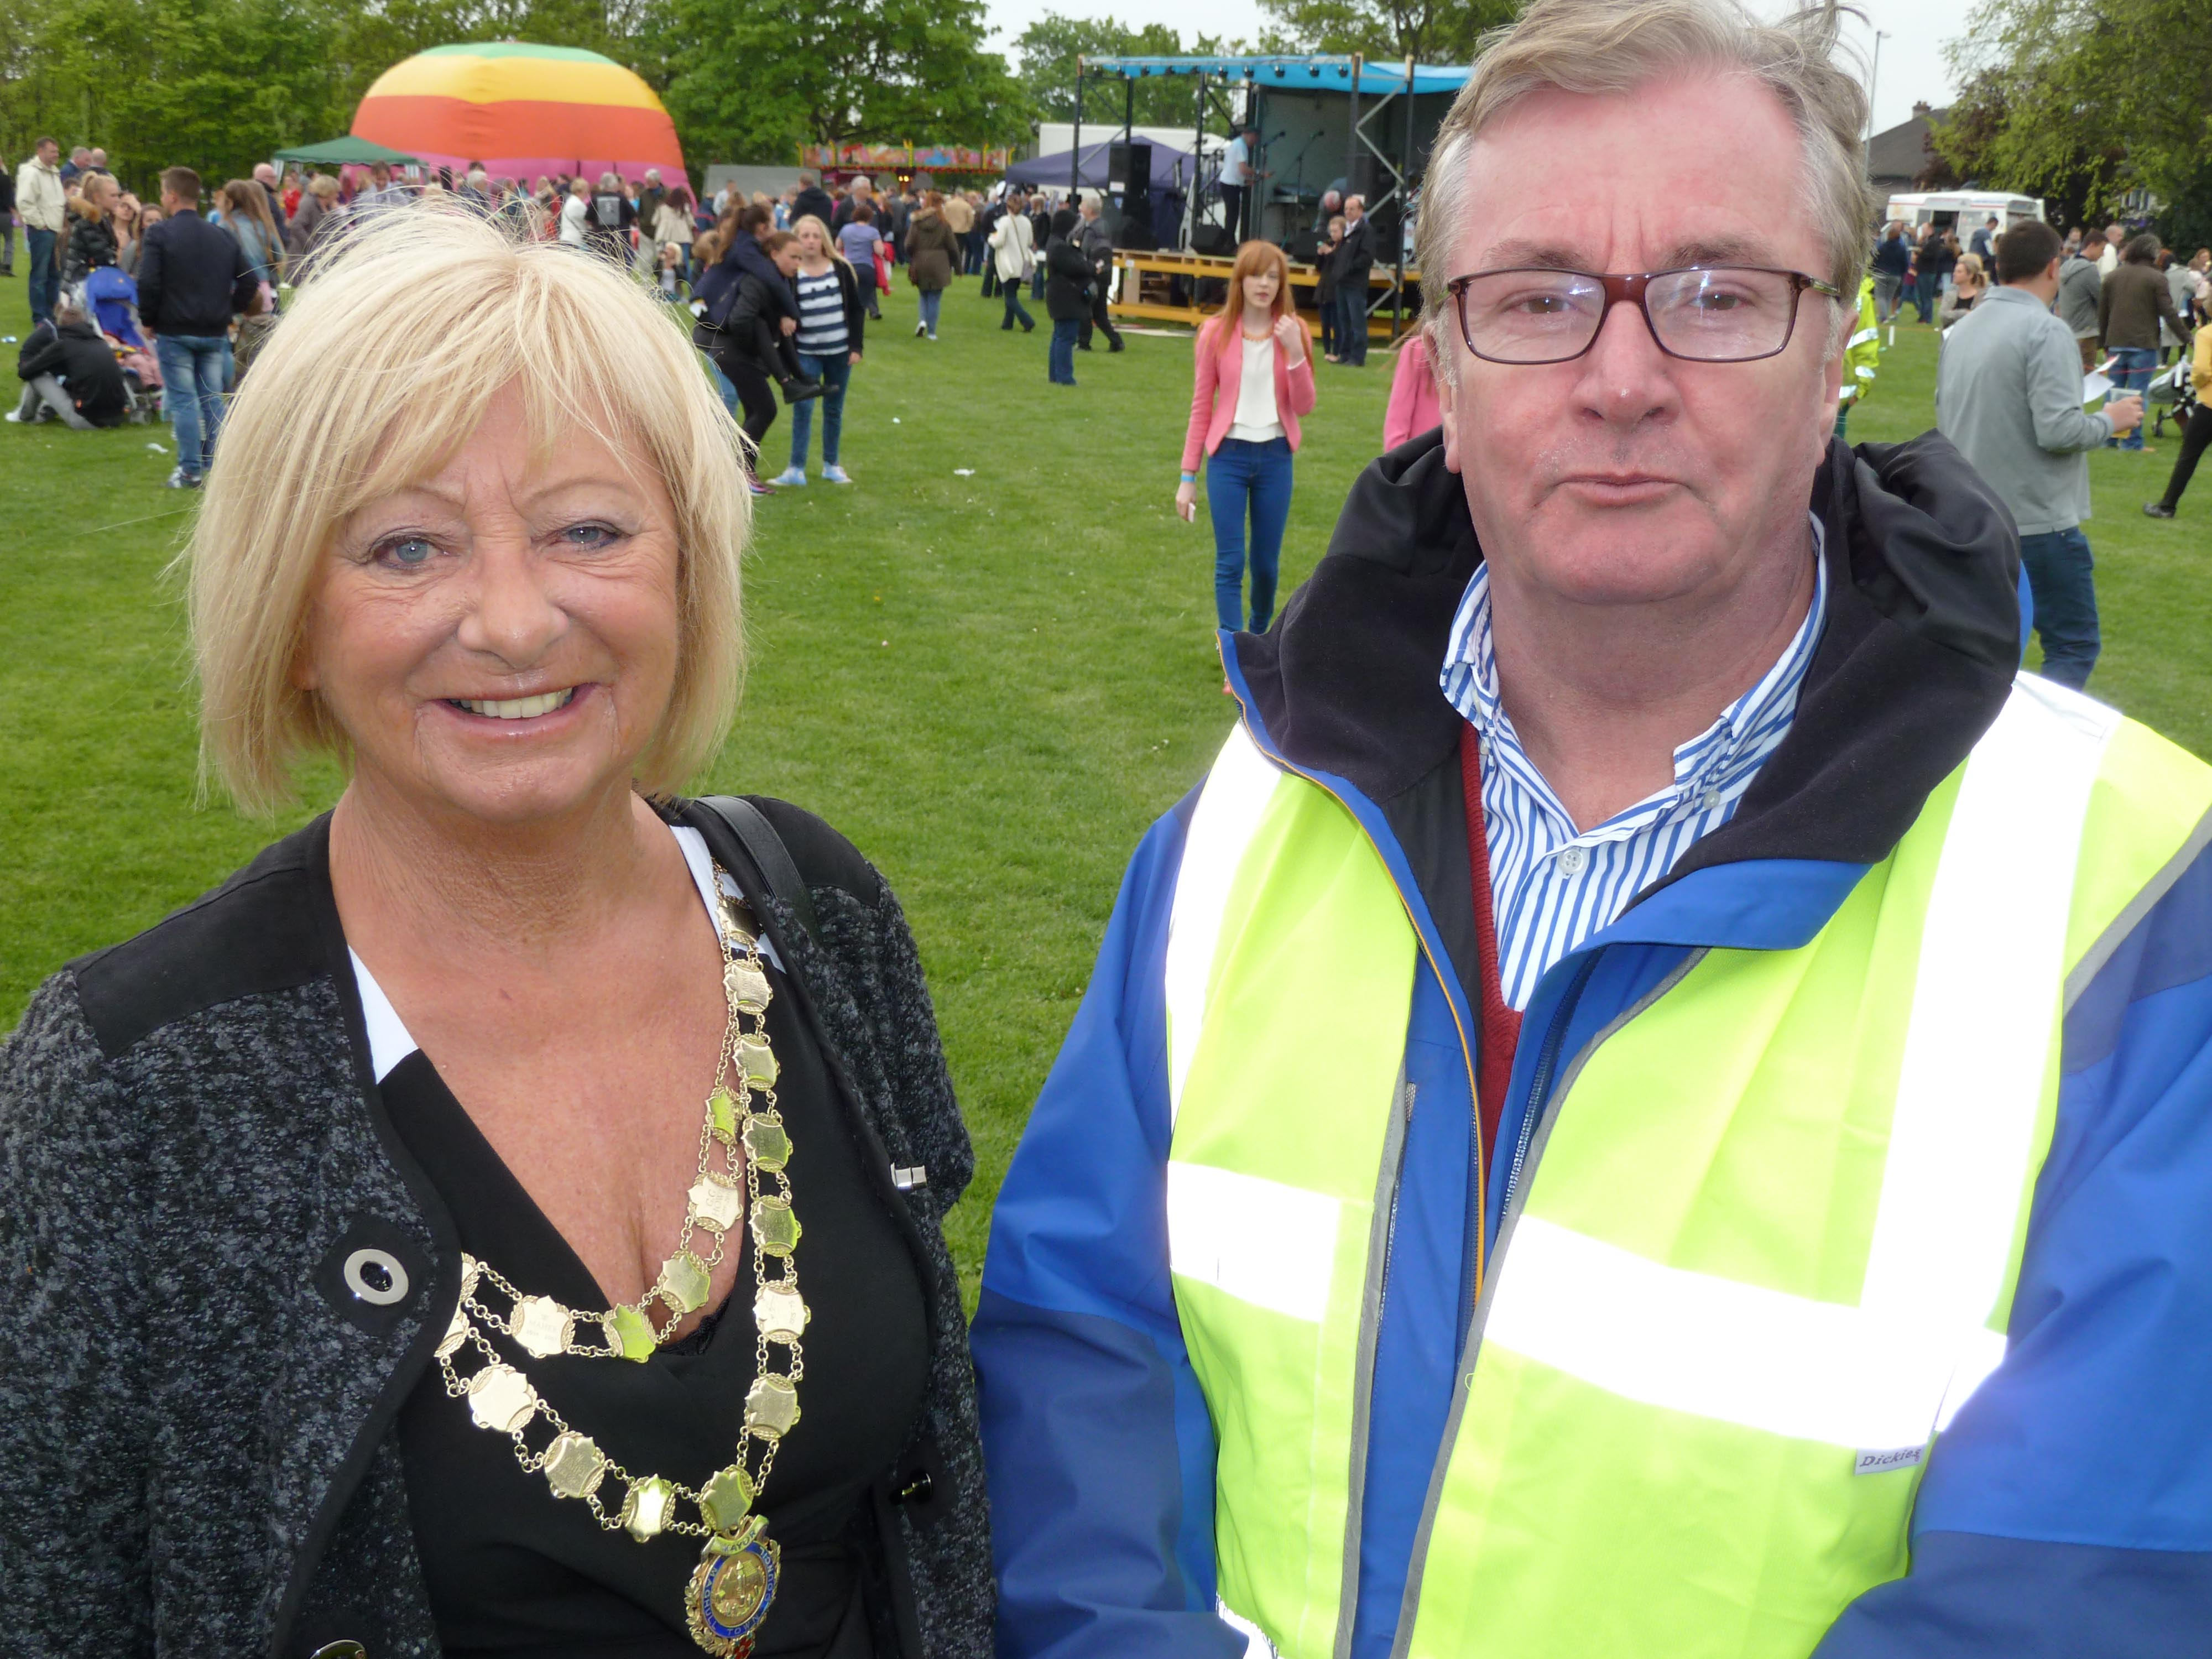 Mayor of Maghull Cllr Joan Deegan and Maghull Town Council Labour leader Cllr Patrick McKinley at the MaghullFest last summer